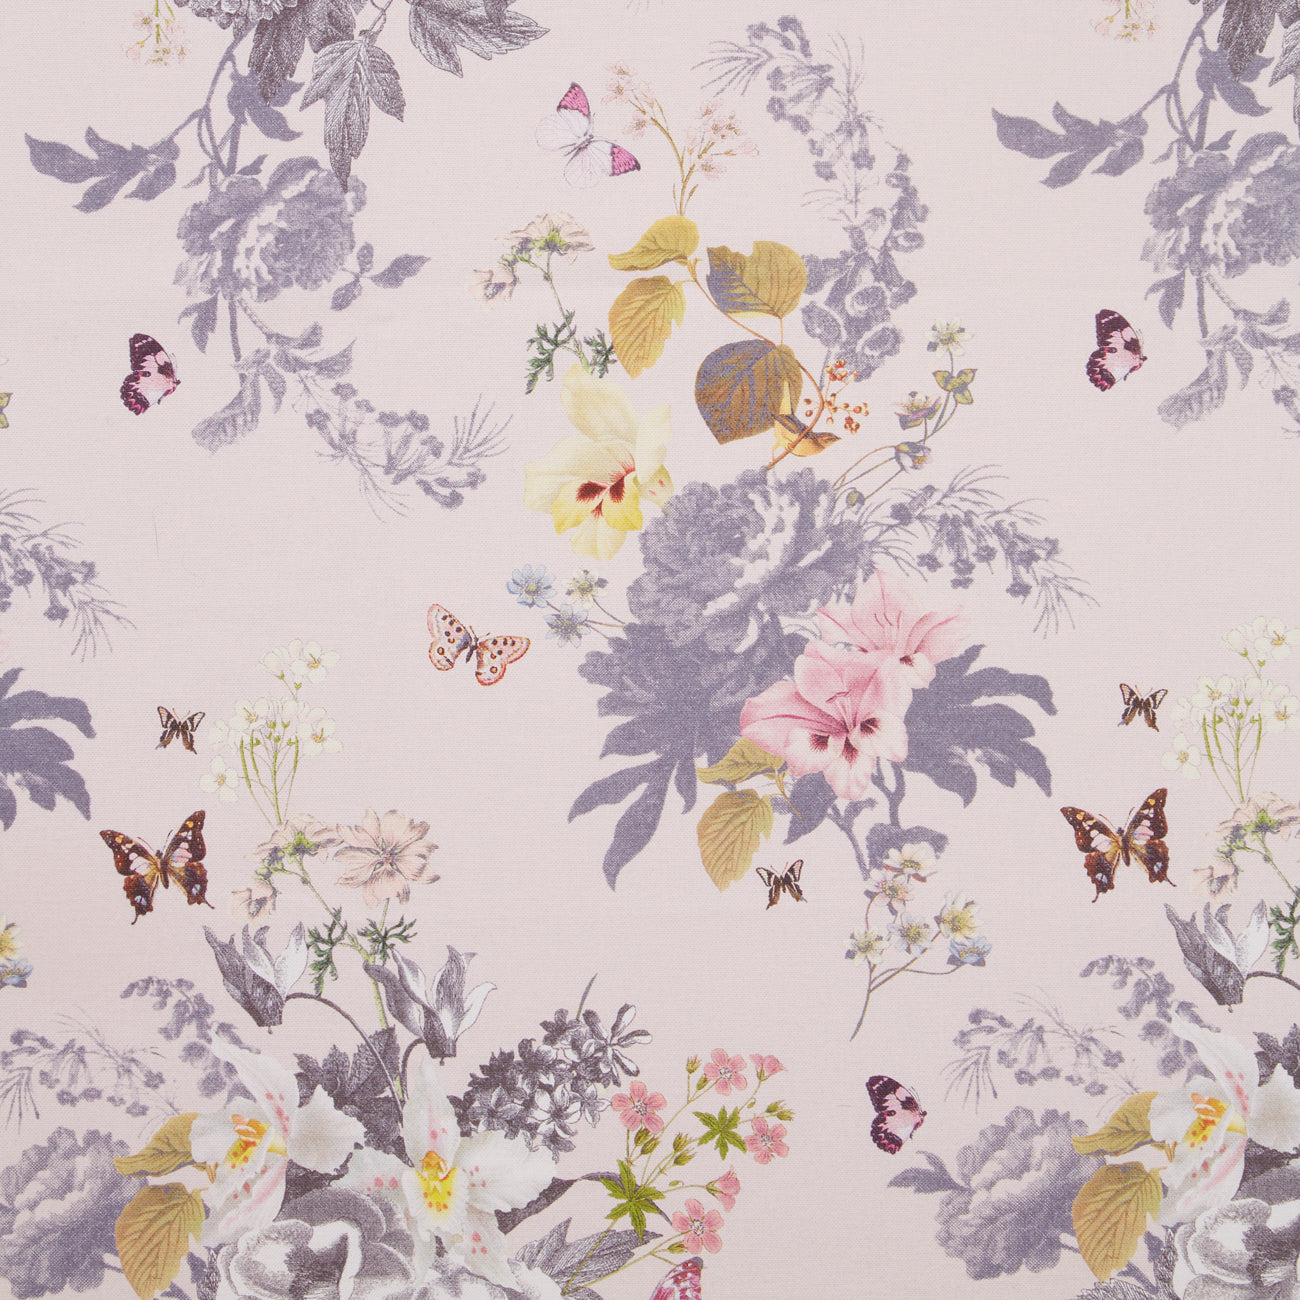 Botanical Oasis Designer Floral & Butterfly Wallpaper | Blush Pink White & Blue